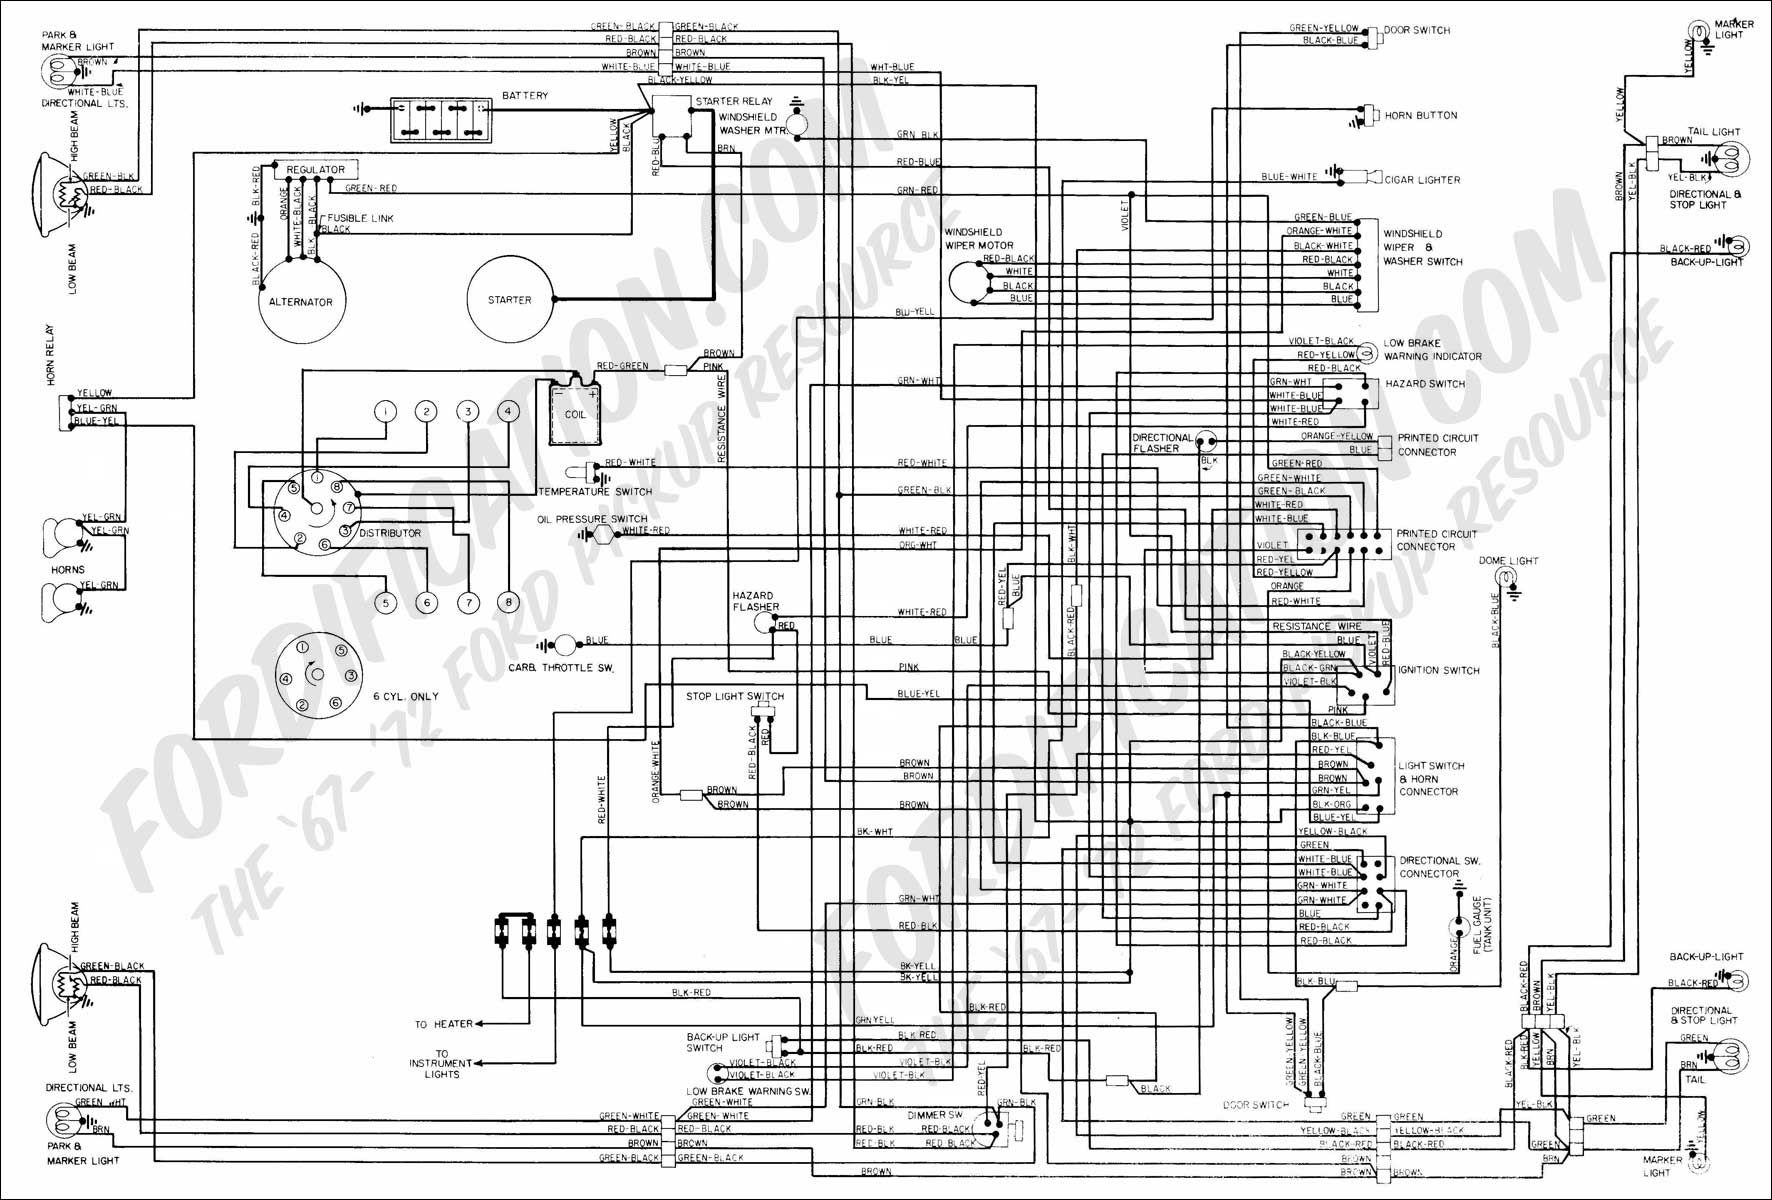 be873db495753211c2fc9a563f039b29 solenoid 1971 f250 1971 ford f100 wiring diagram www ford 1971 ford f250 wiring diagram at metegol.co